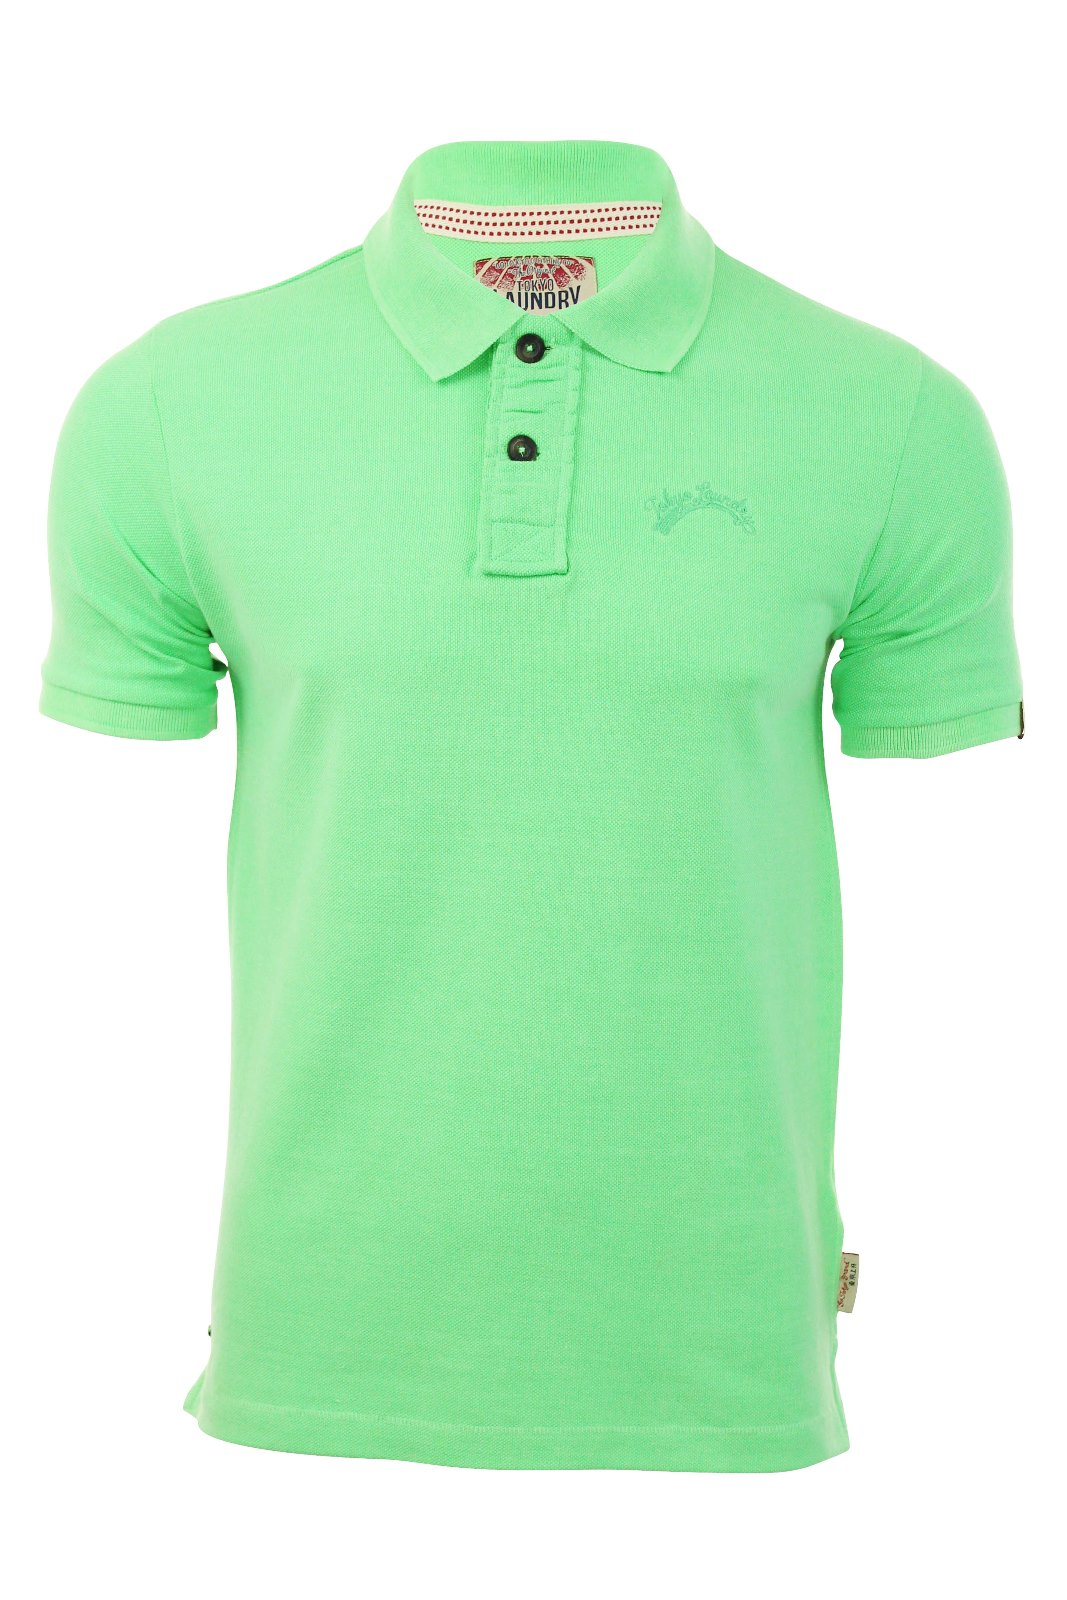 Polos à manches courtes Tokyo laundry turquoise homme 2HxuXyaZjV